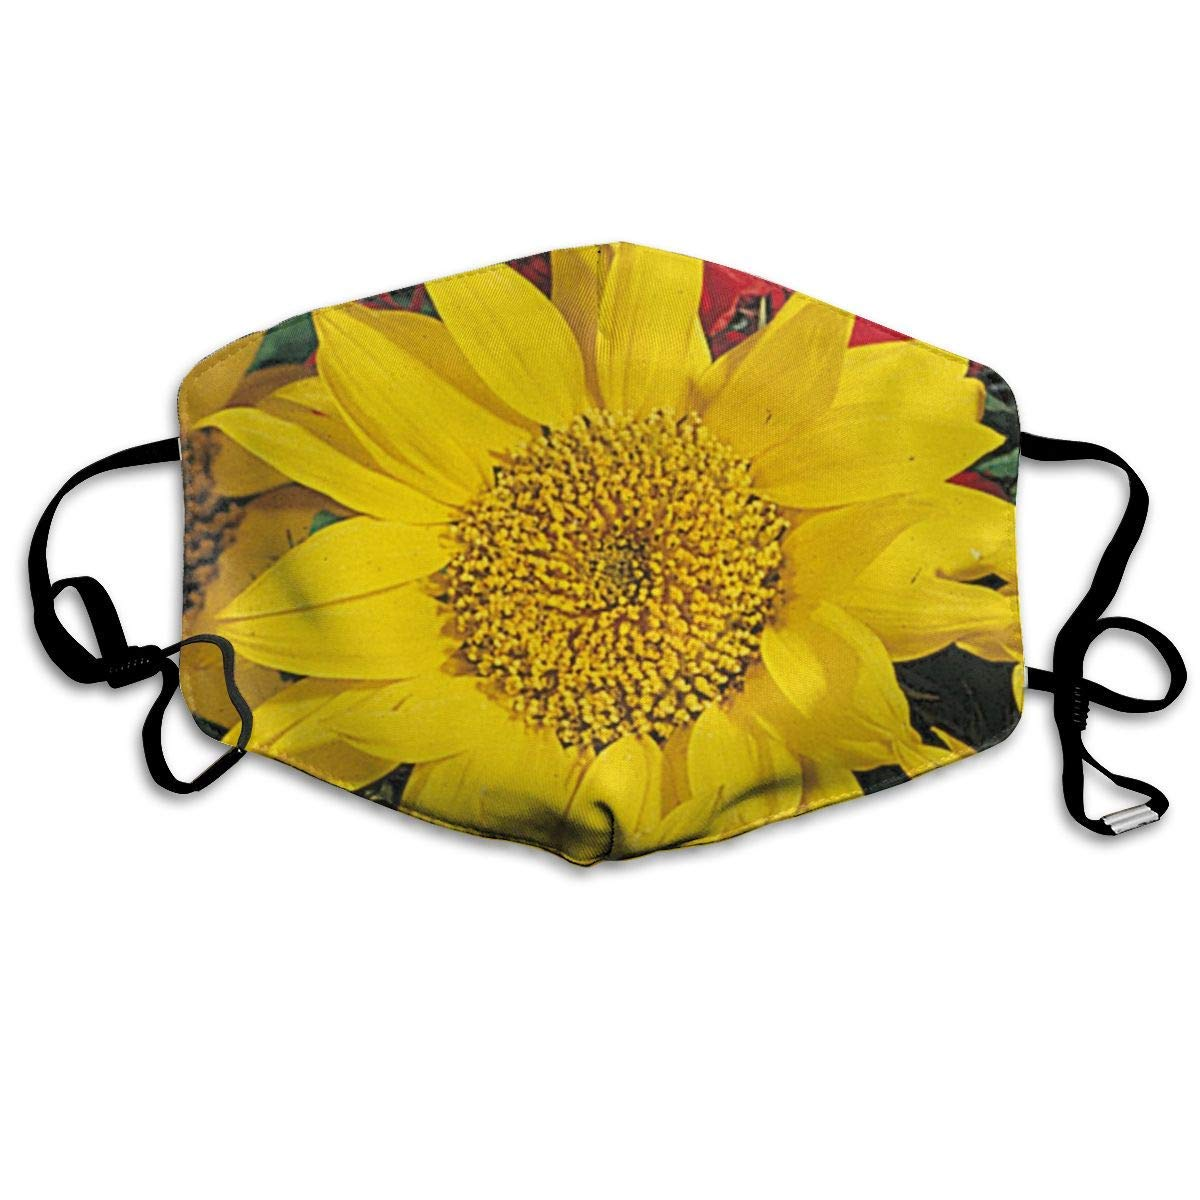 Bdwuhs Mascarillas Bucales,Boca Máscara Dust Mask for Women and Men Beautiful Sunflower Printed Foldable Mask Face Mask Anti-Dust Mouth Mask